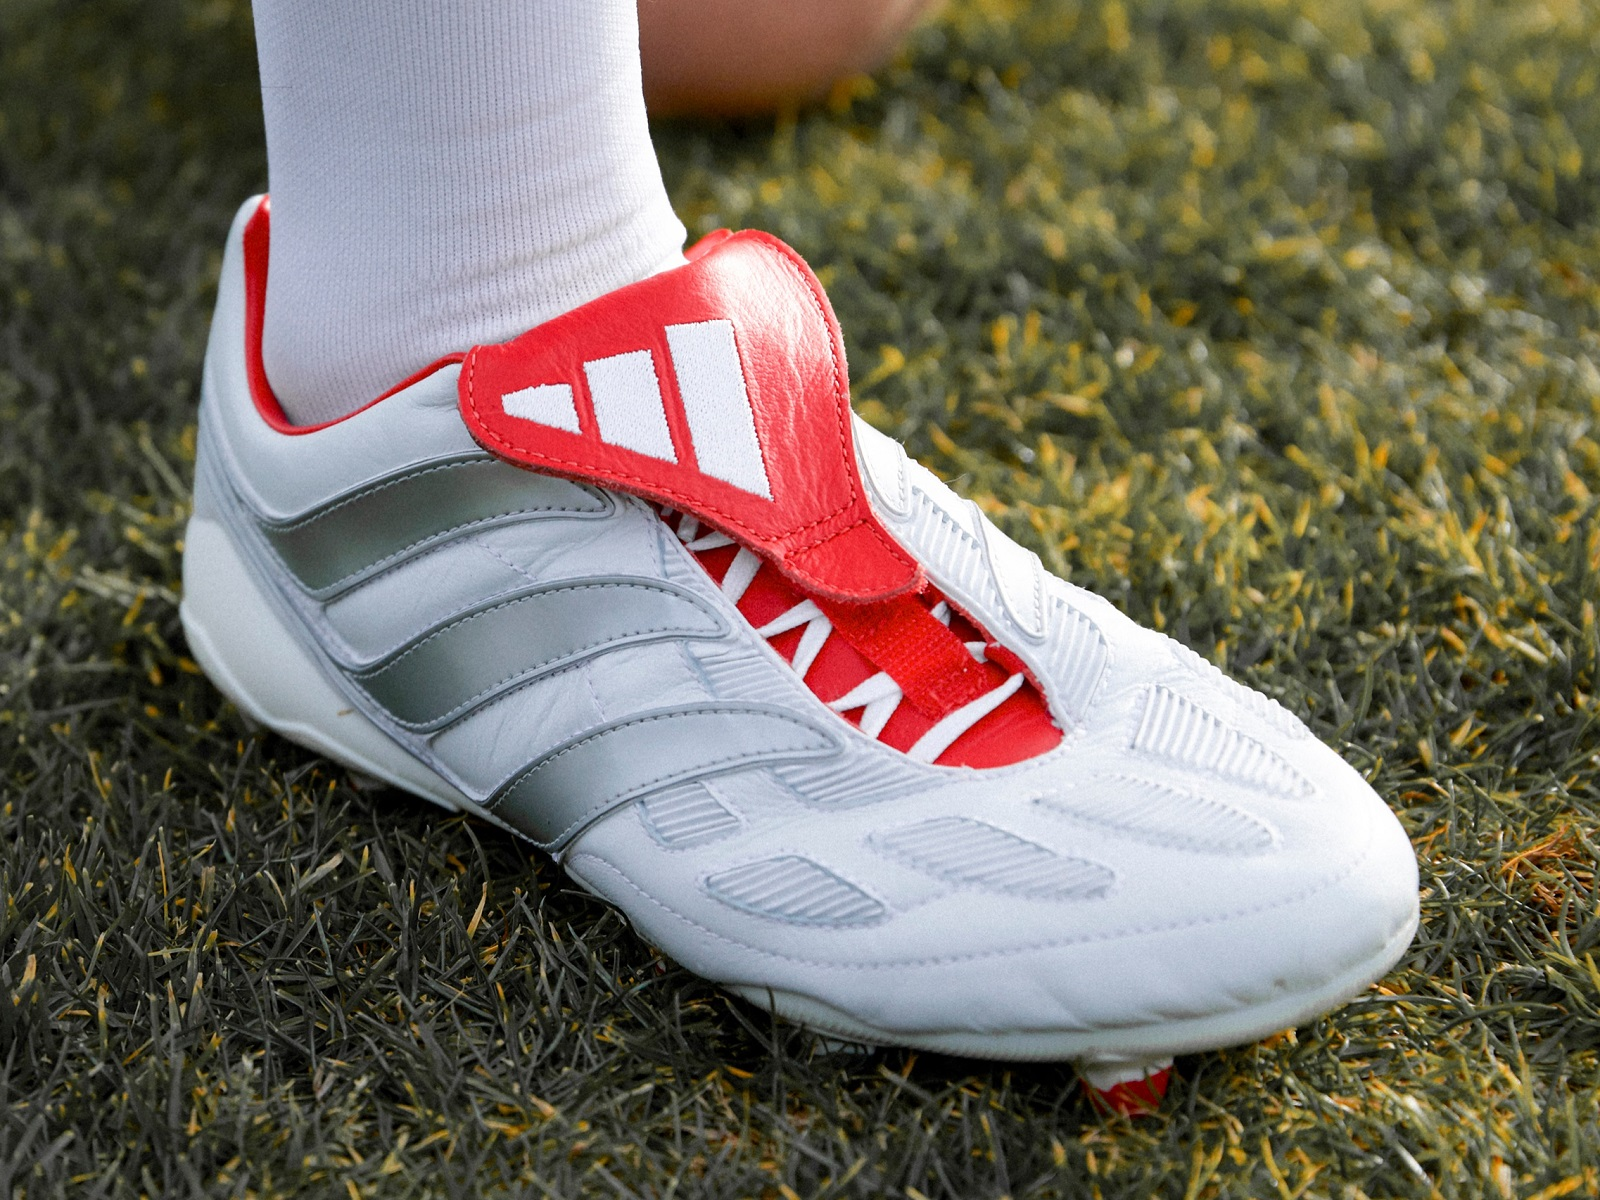 innovative design 5dcf2 c3d8a adidas Predator Precision White Beckham